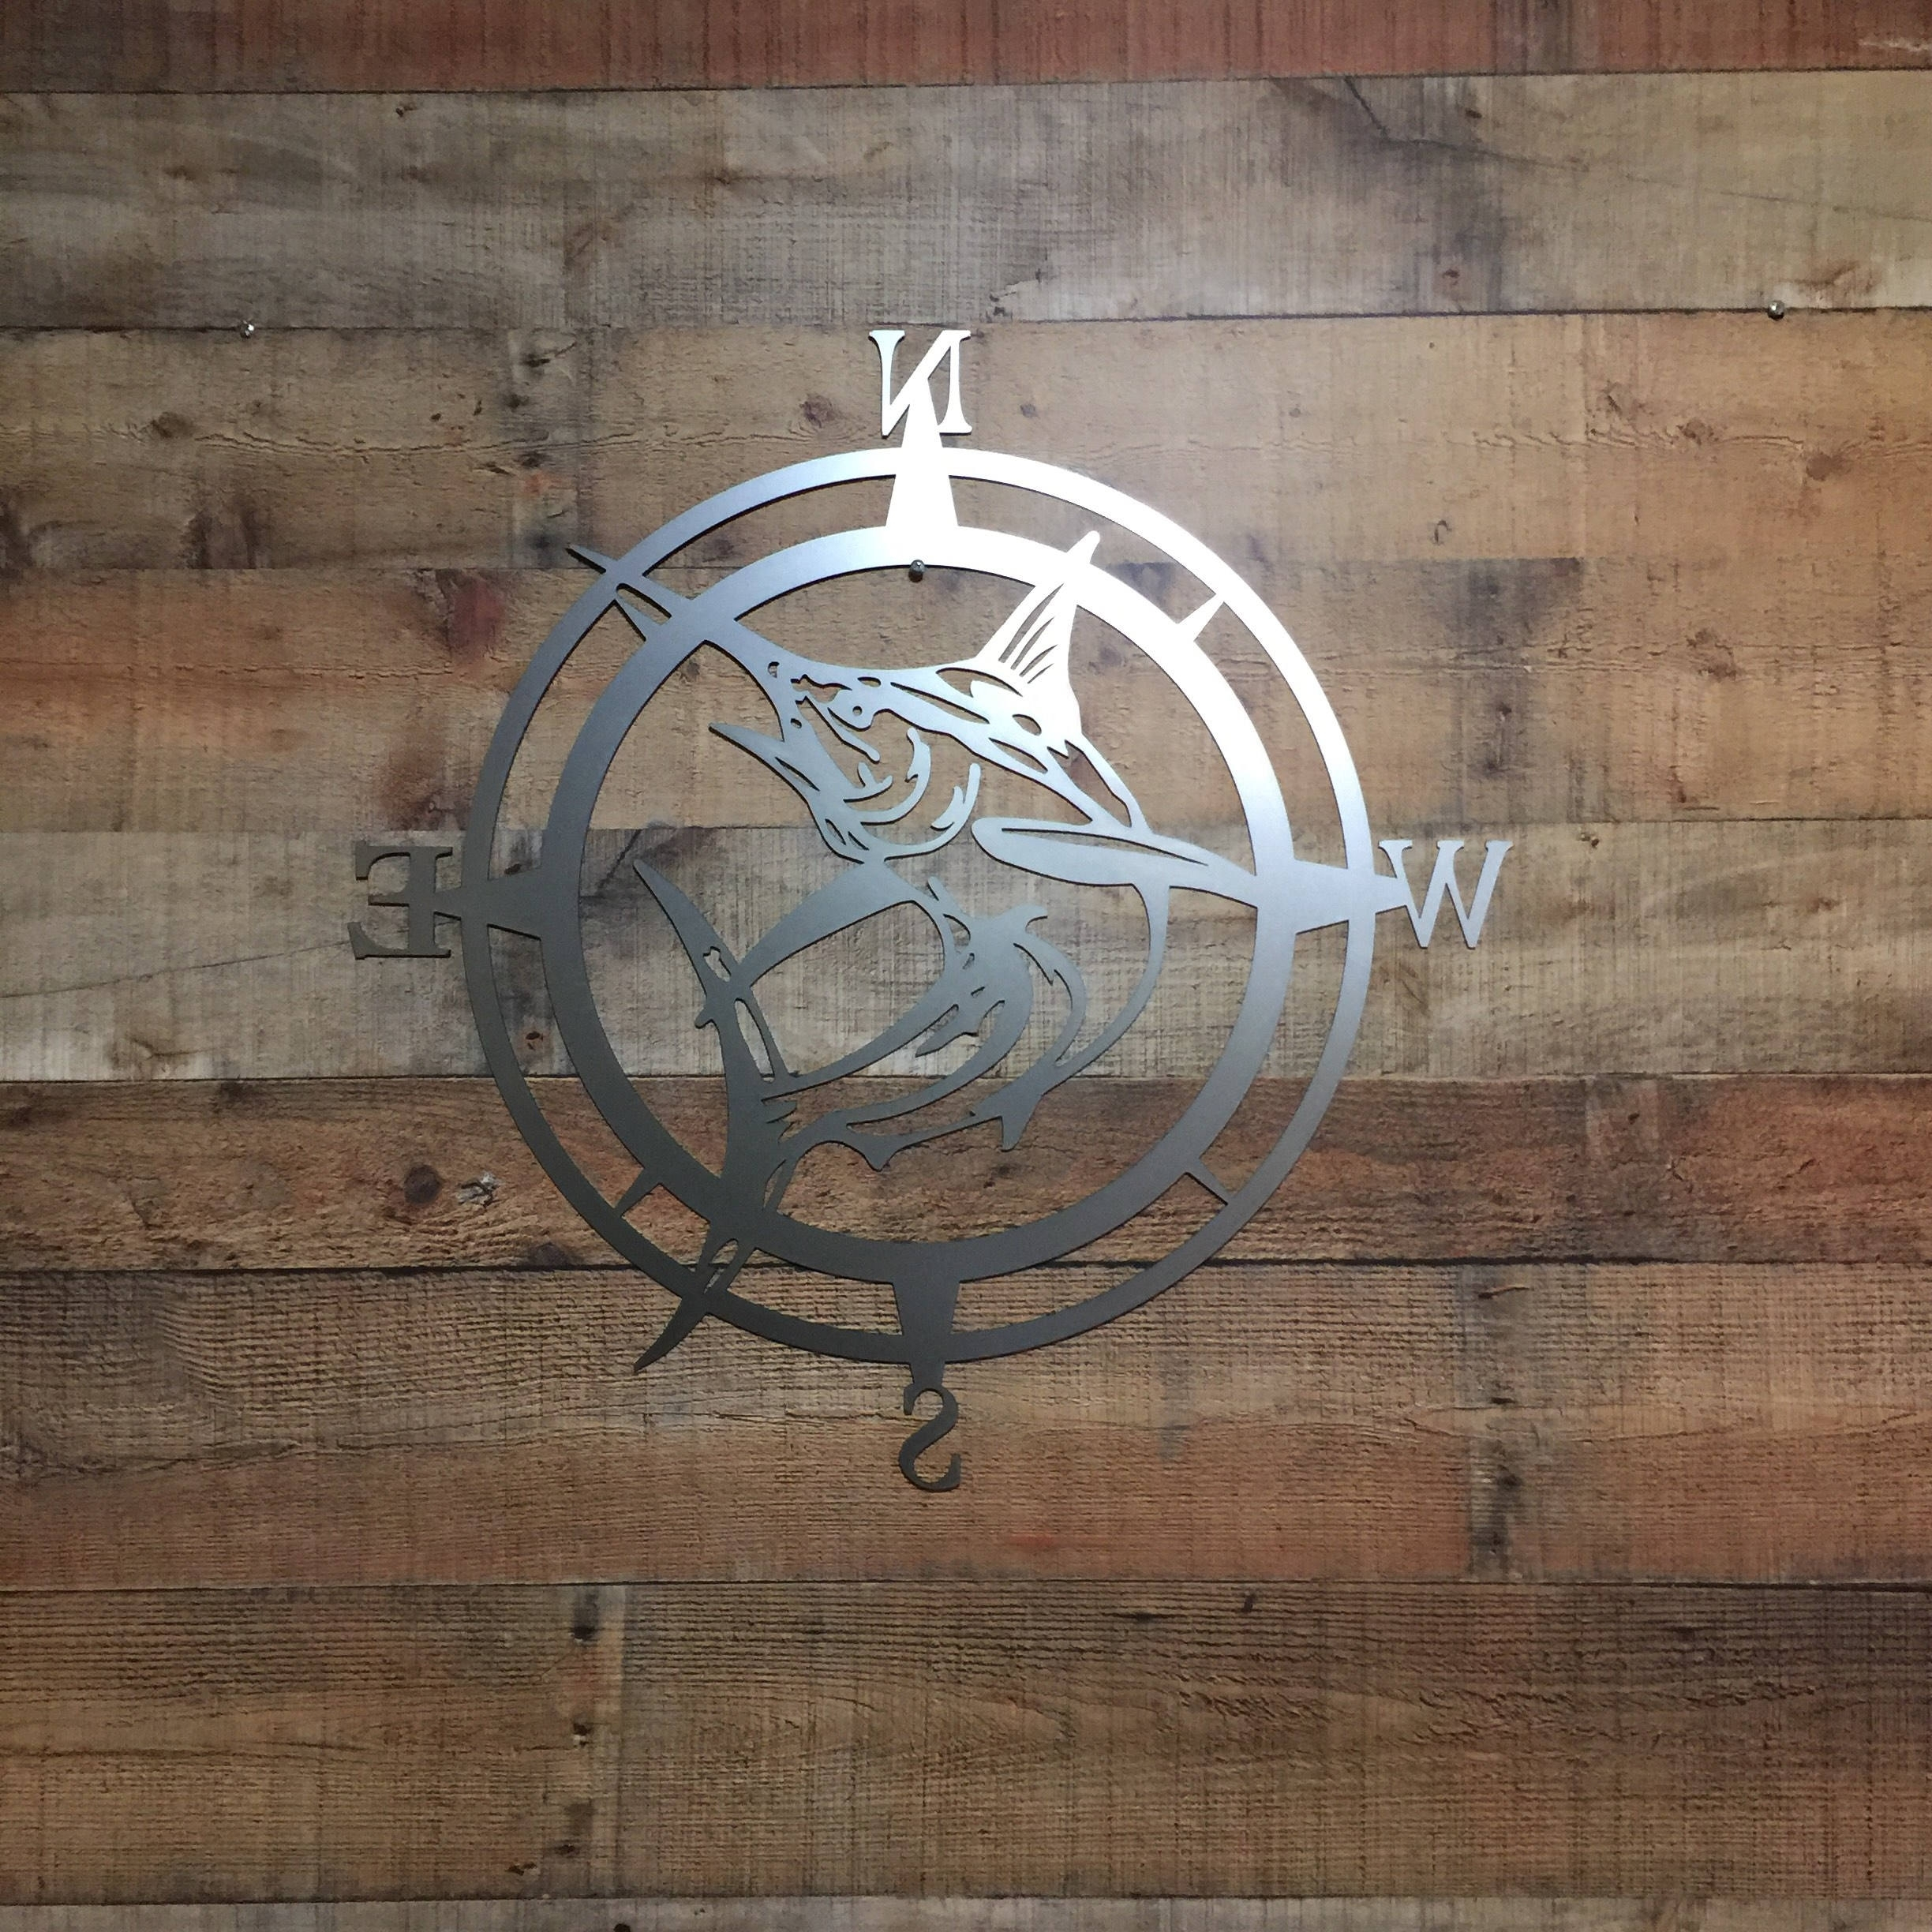 Well Known Personalized Metal Wall Art Regarding Marlin Compass Wall Decor, Marlin Compass,wall Art, Nautical Metal (View 18 of 20)